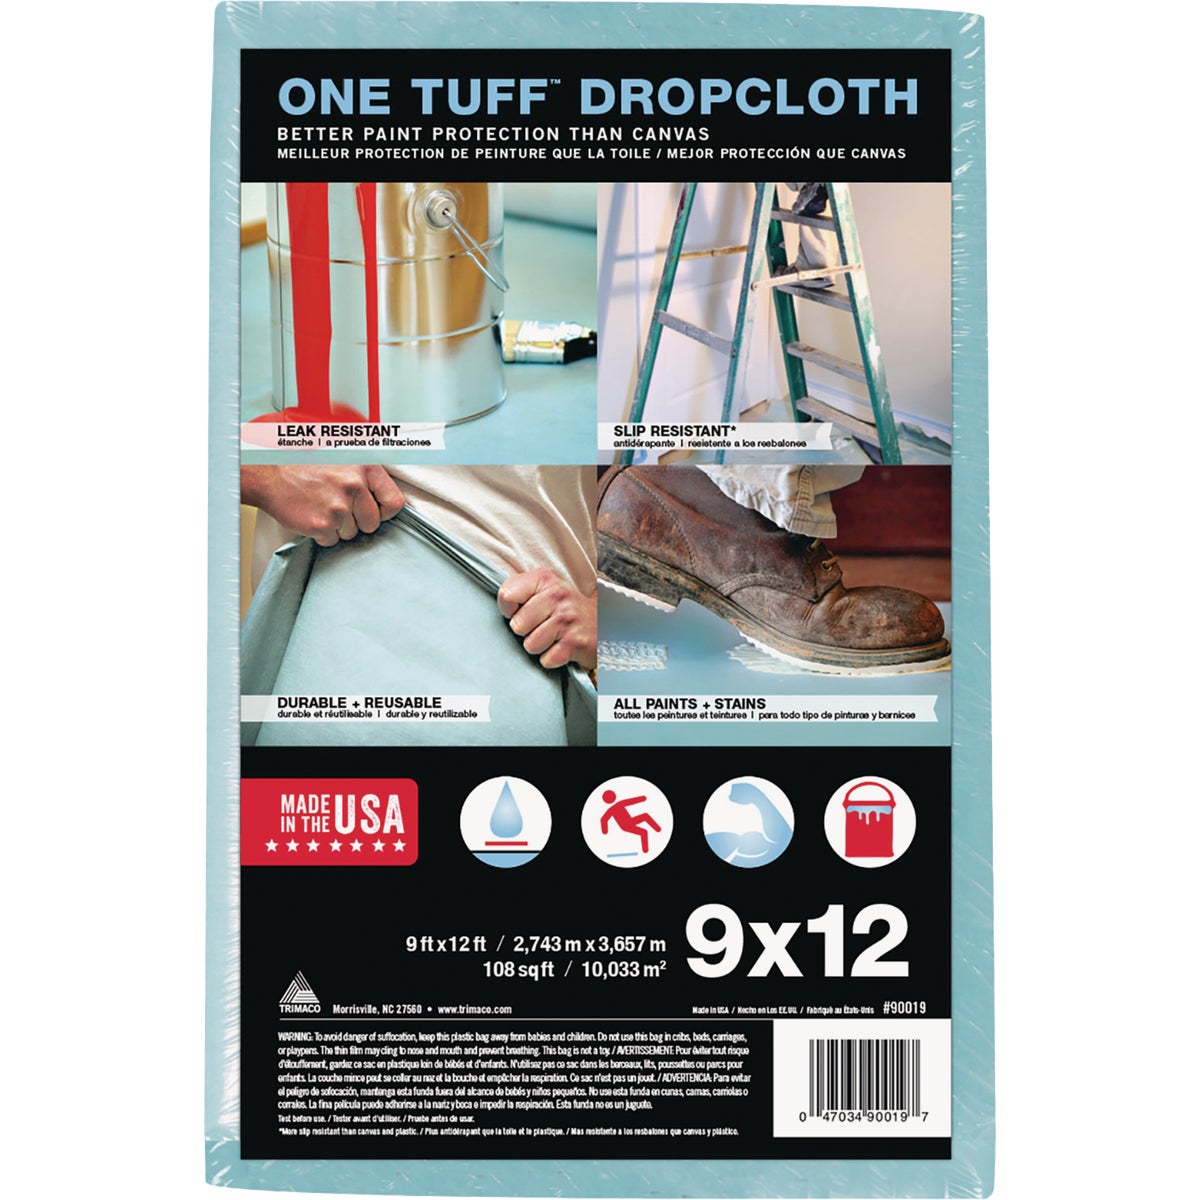 9X12 ONE TUFF DROPCLOTH - 90019 by Trimaco L L C